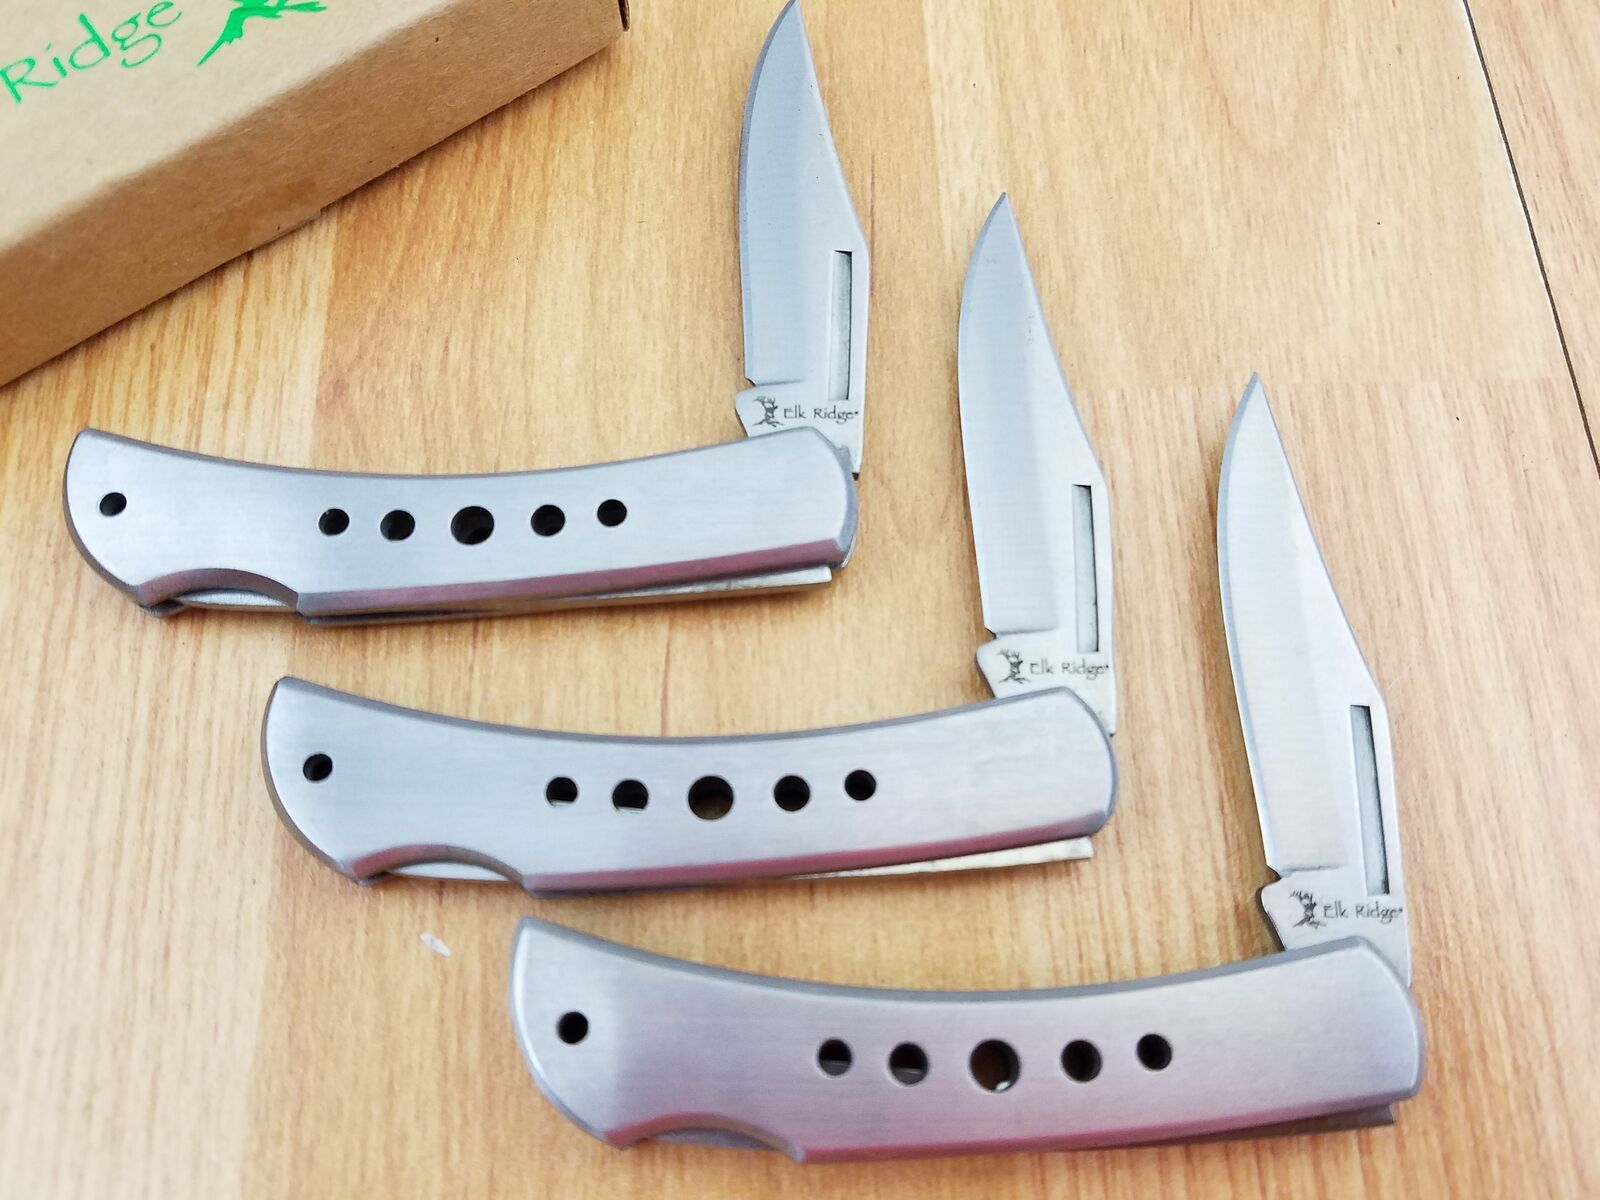 Elk Ridge LOT OF 3 Silver Stainless Lockback Folding Pocket Knife 125S3